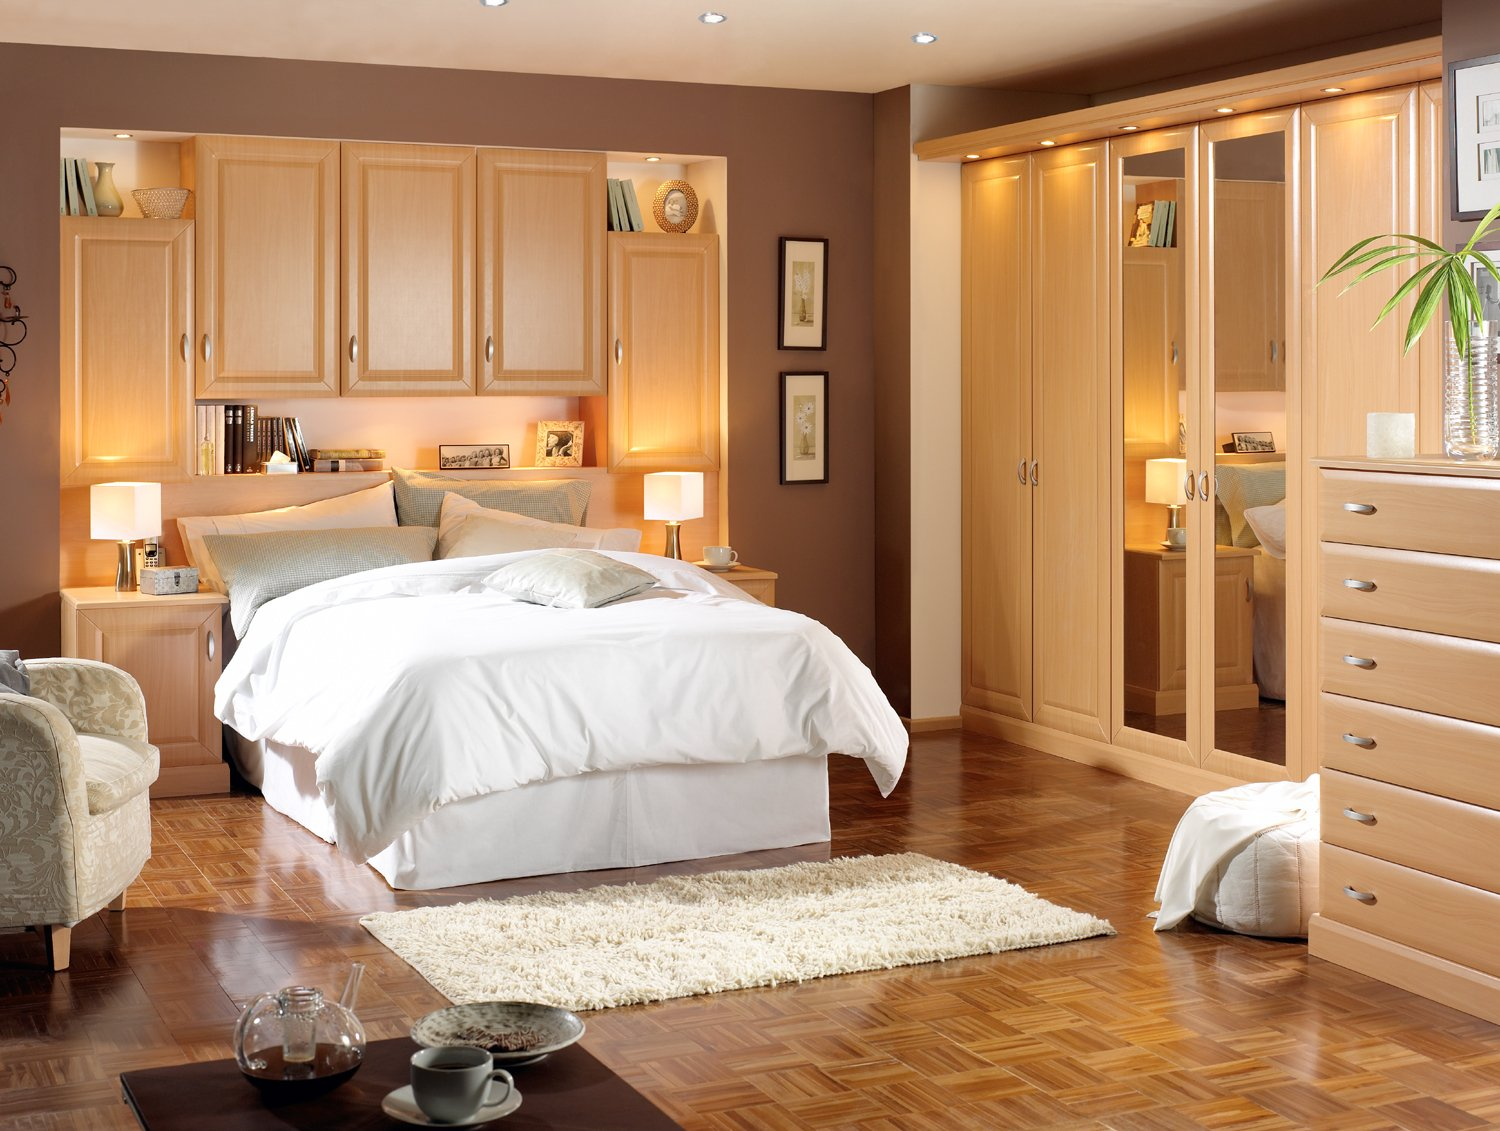 Bedrooms cupboard designs pictures an interior design for Bedroom images interior designs